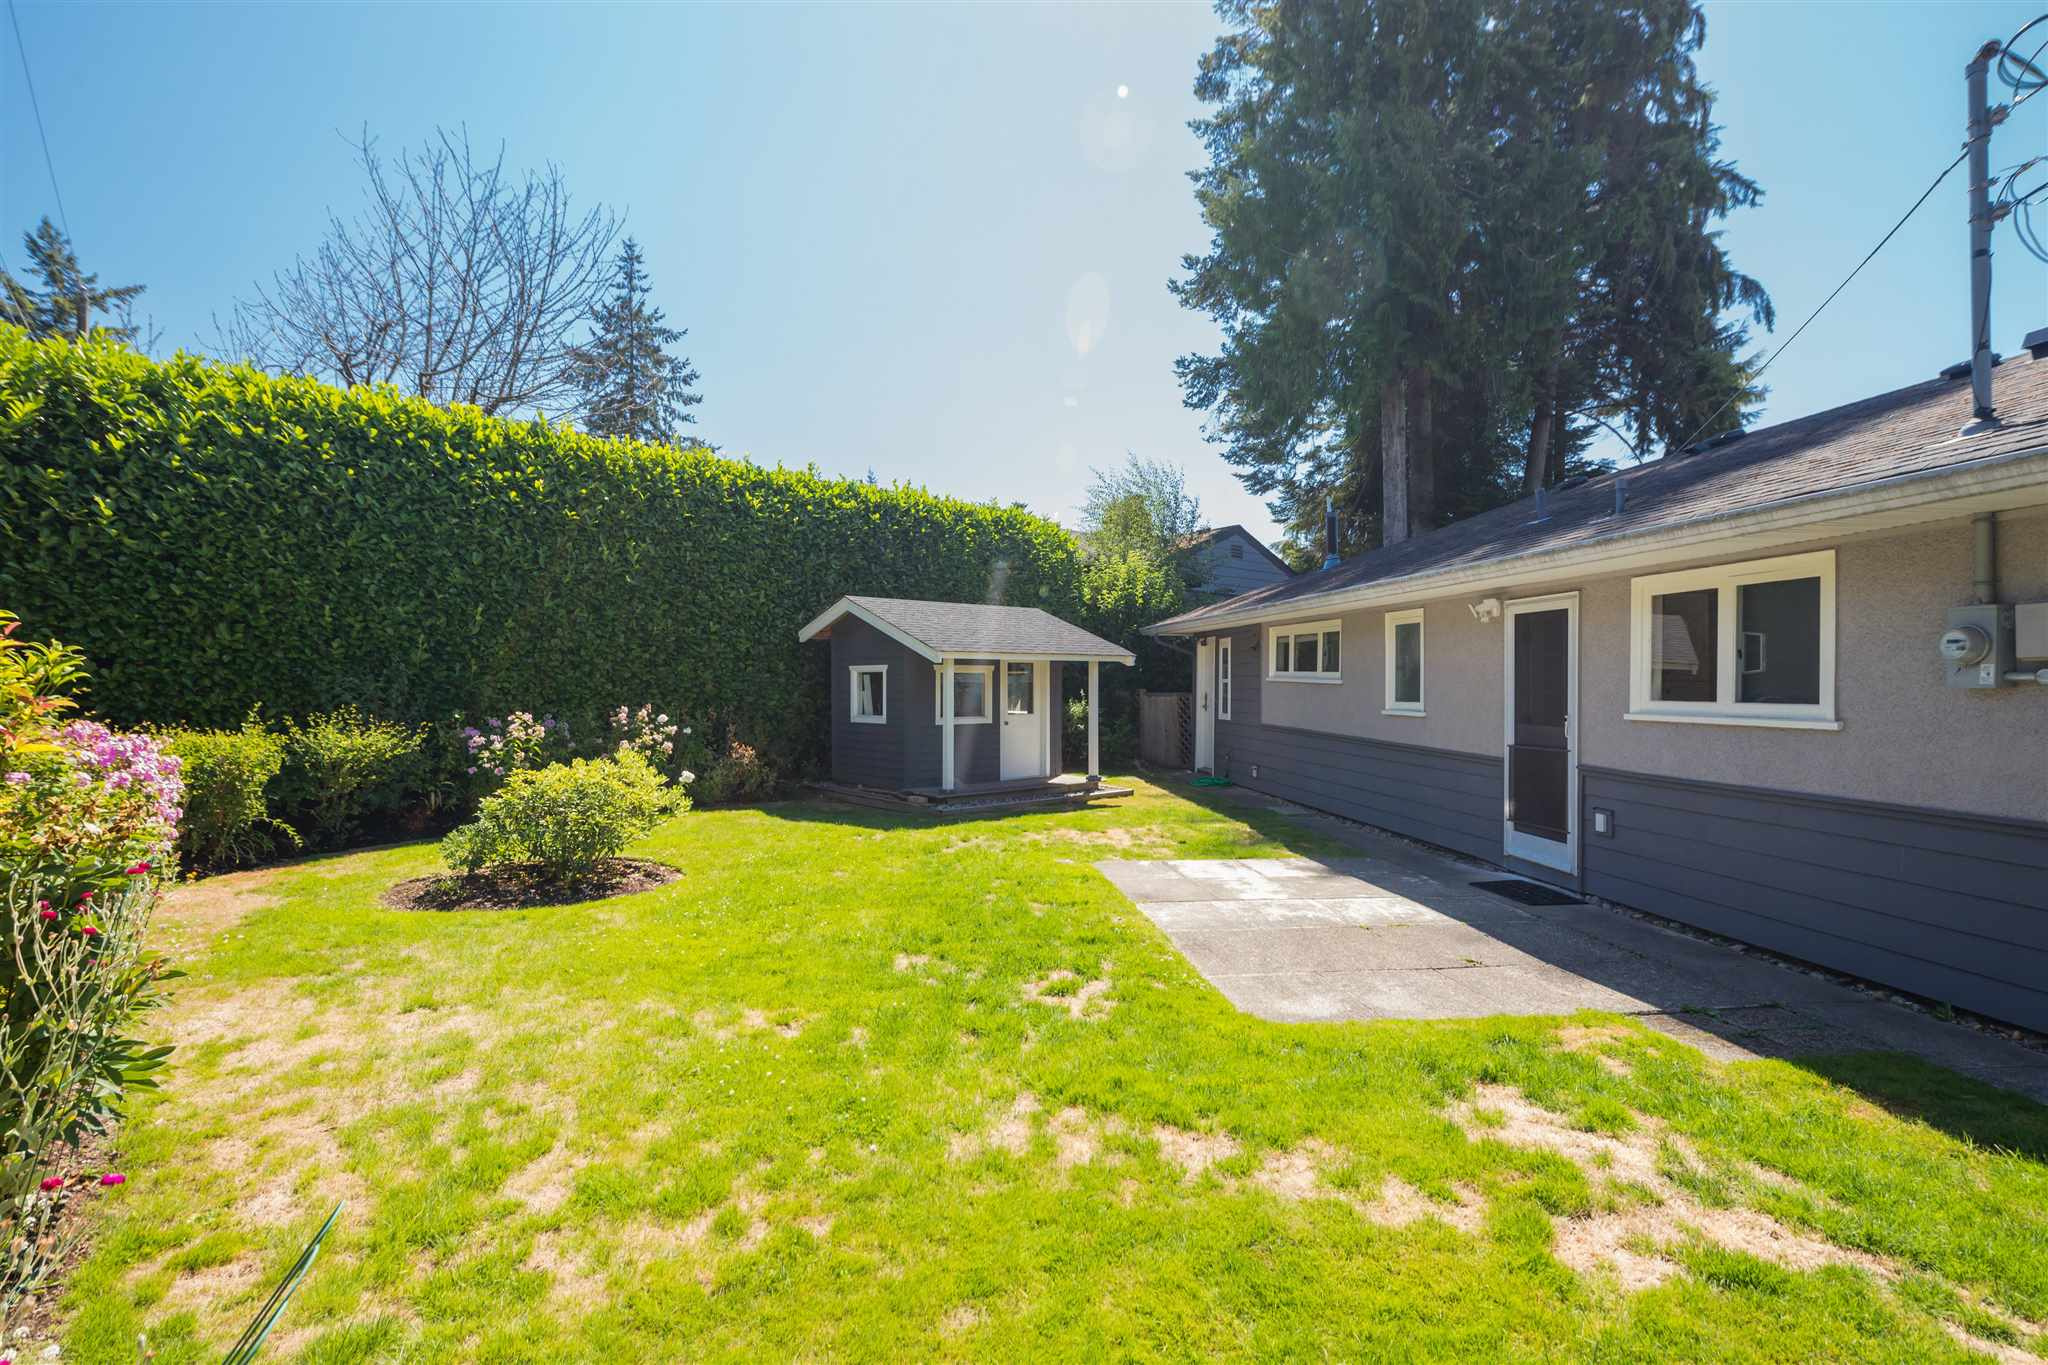 960 W QUEENS ROAD - Edgemont House/Single Family for sale, 2 Bedrooms (R2623308) - #17